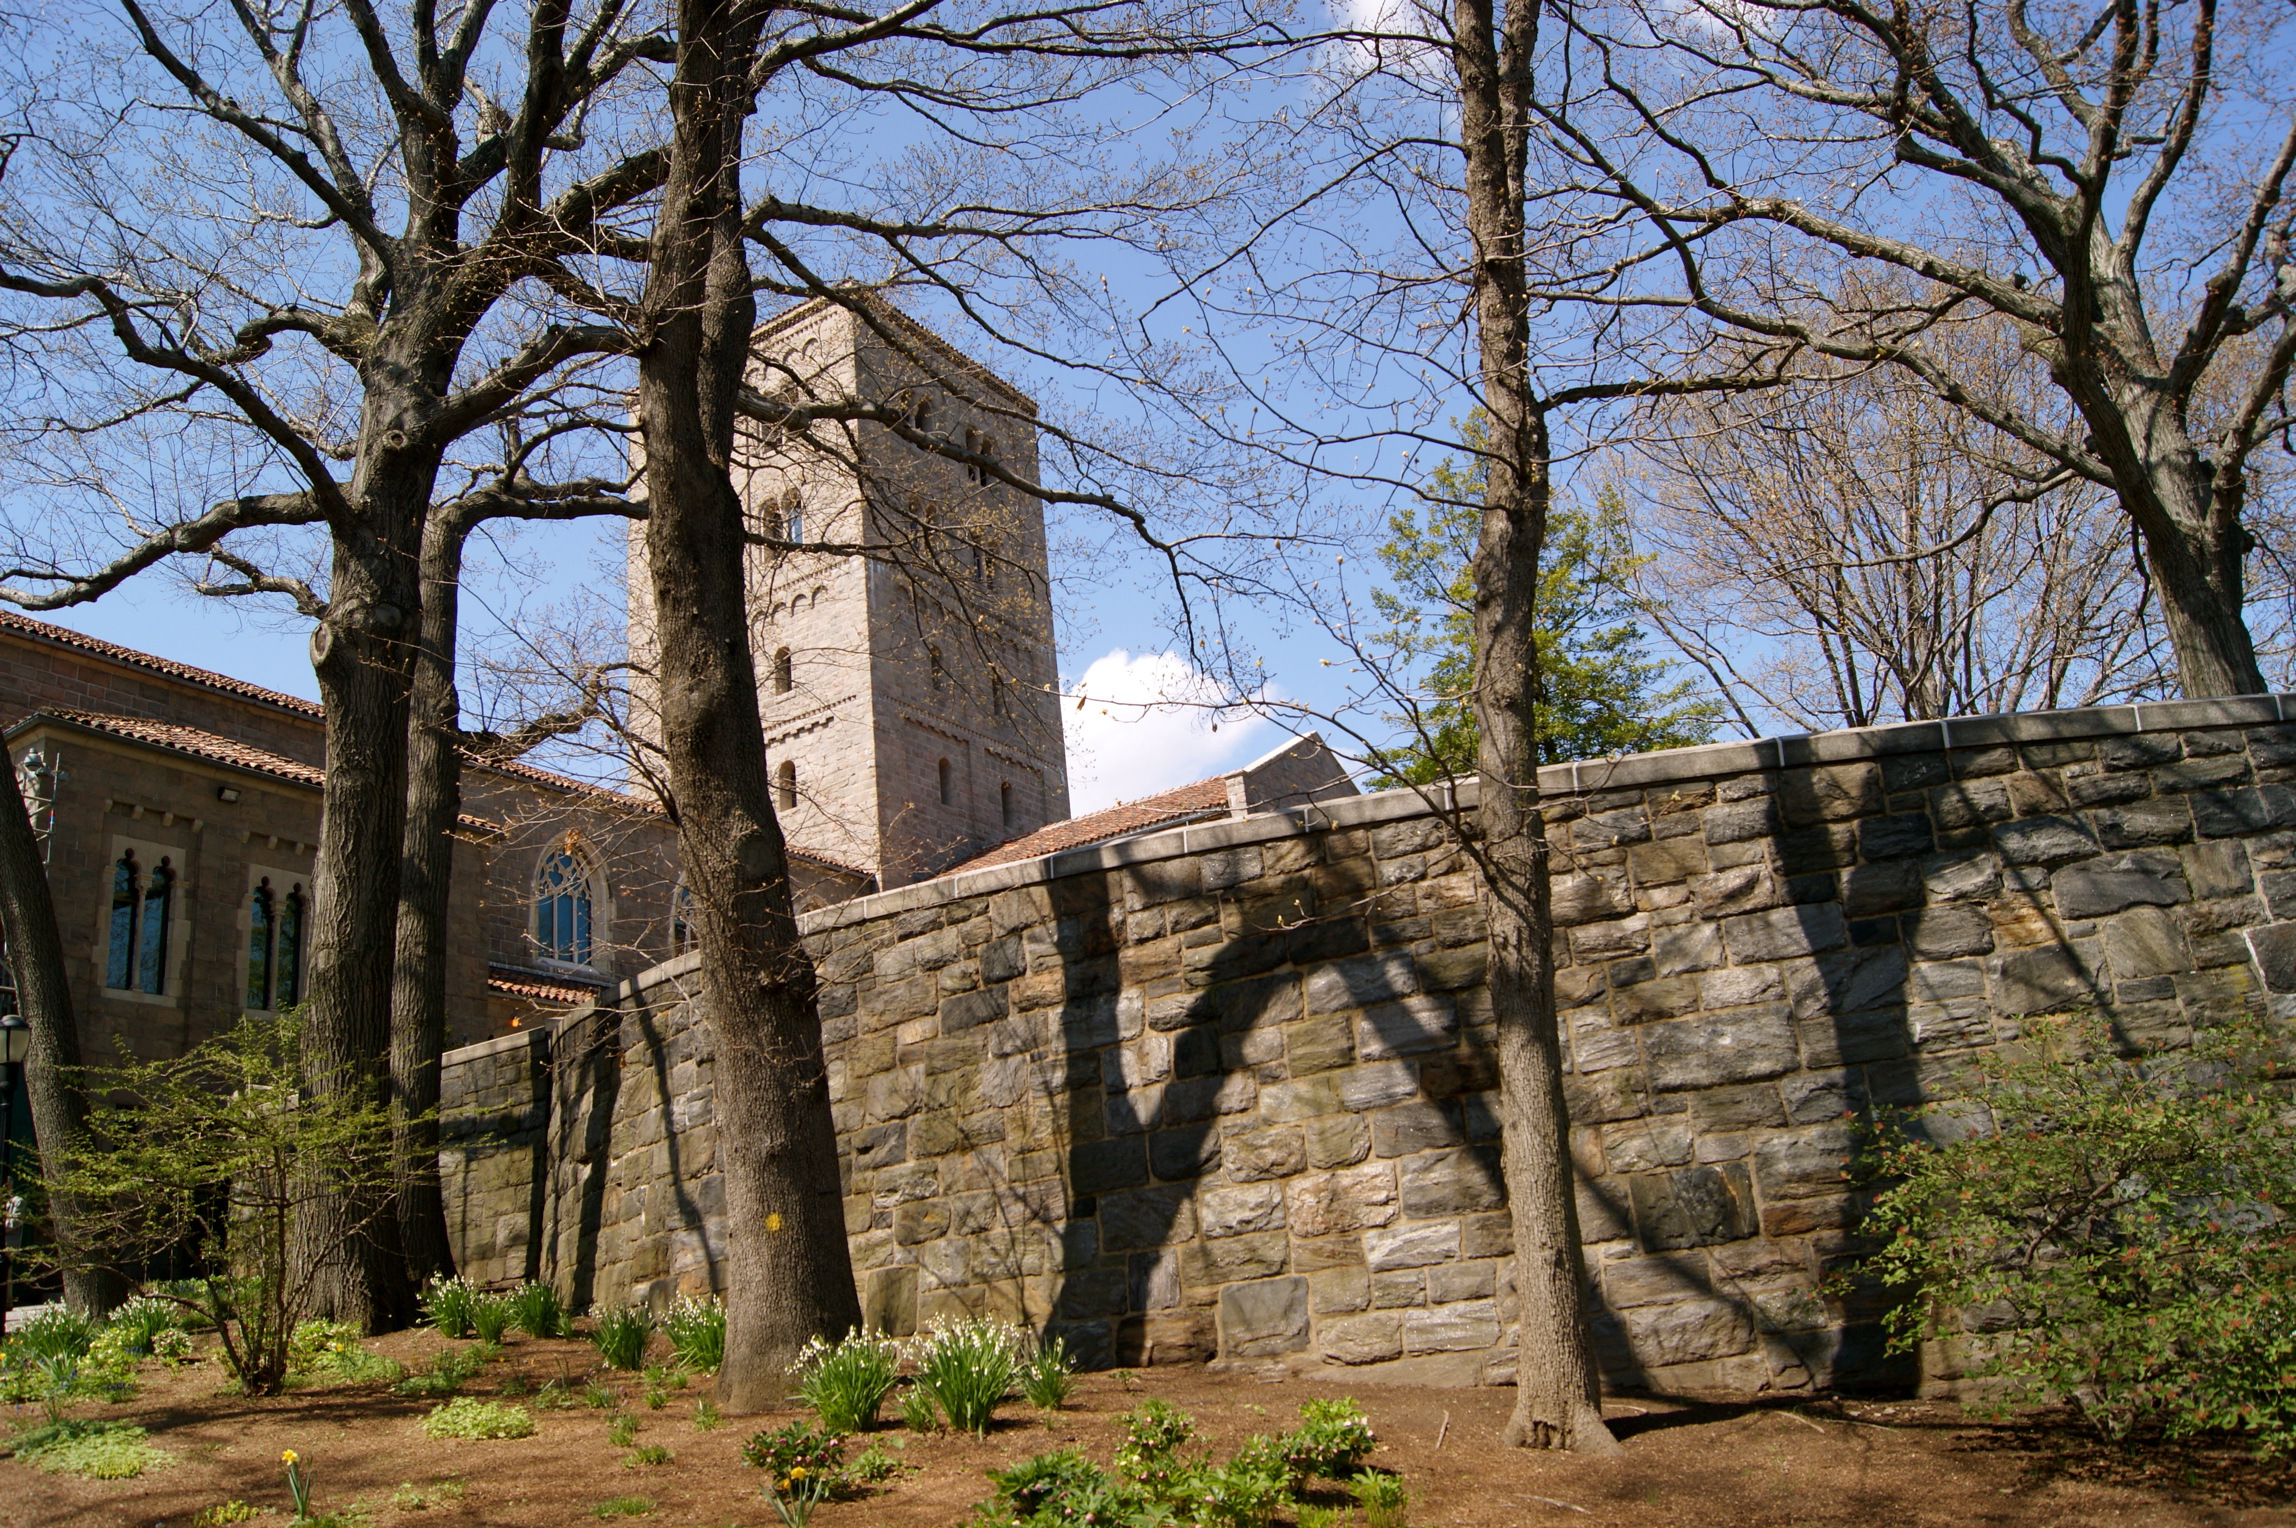 Approaching the Cloisters